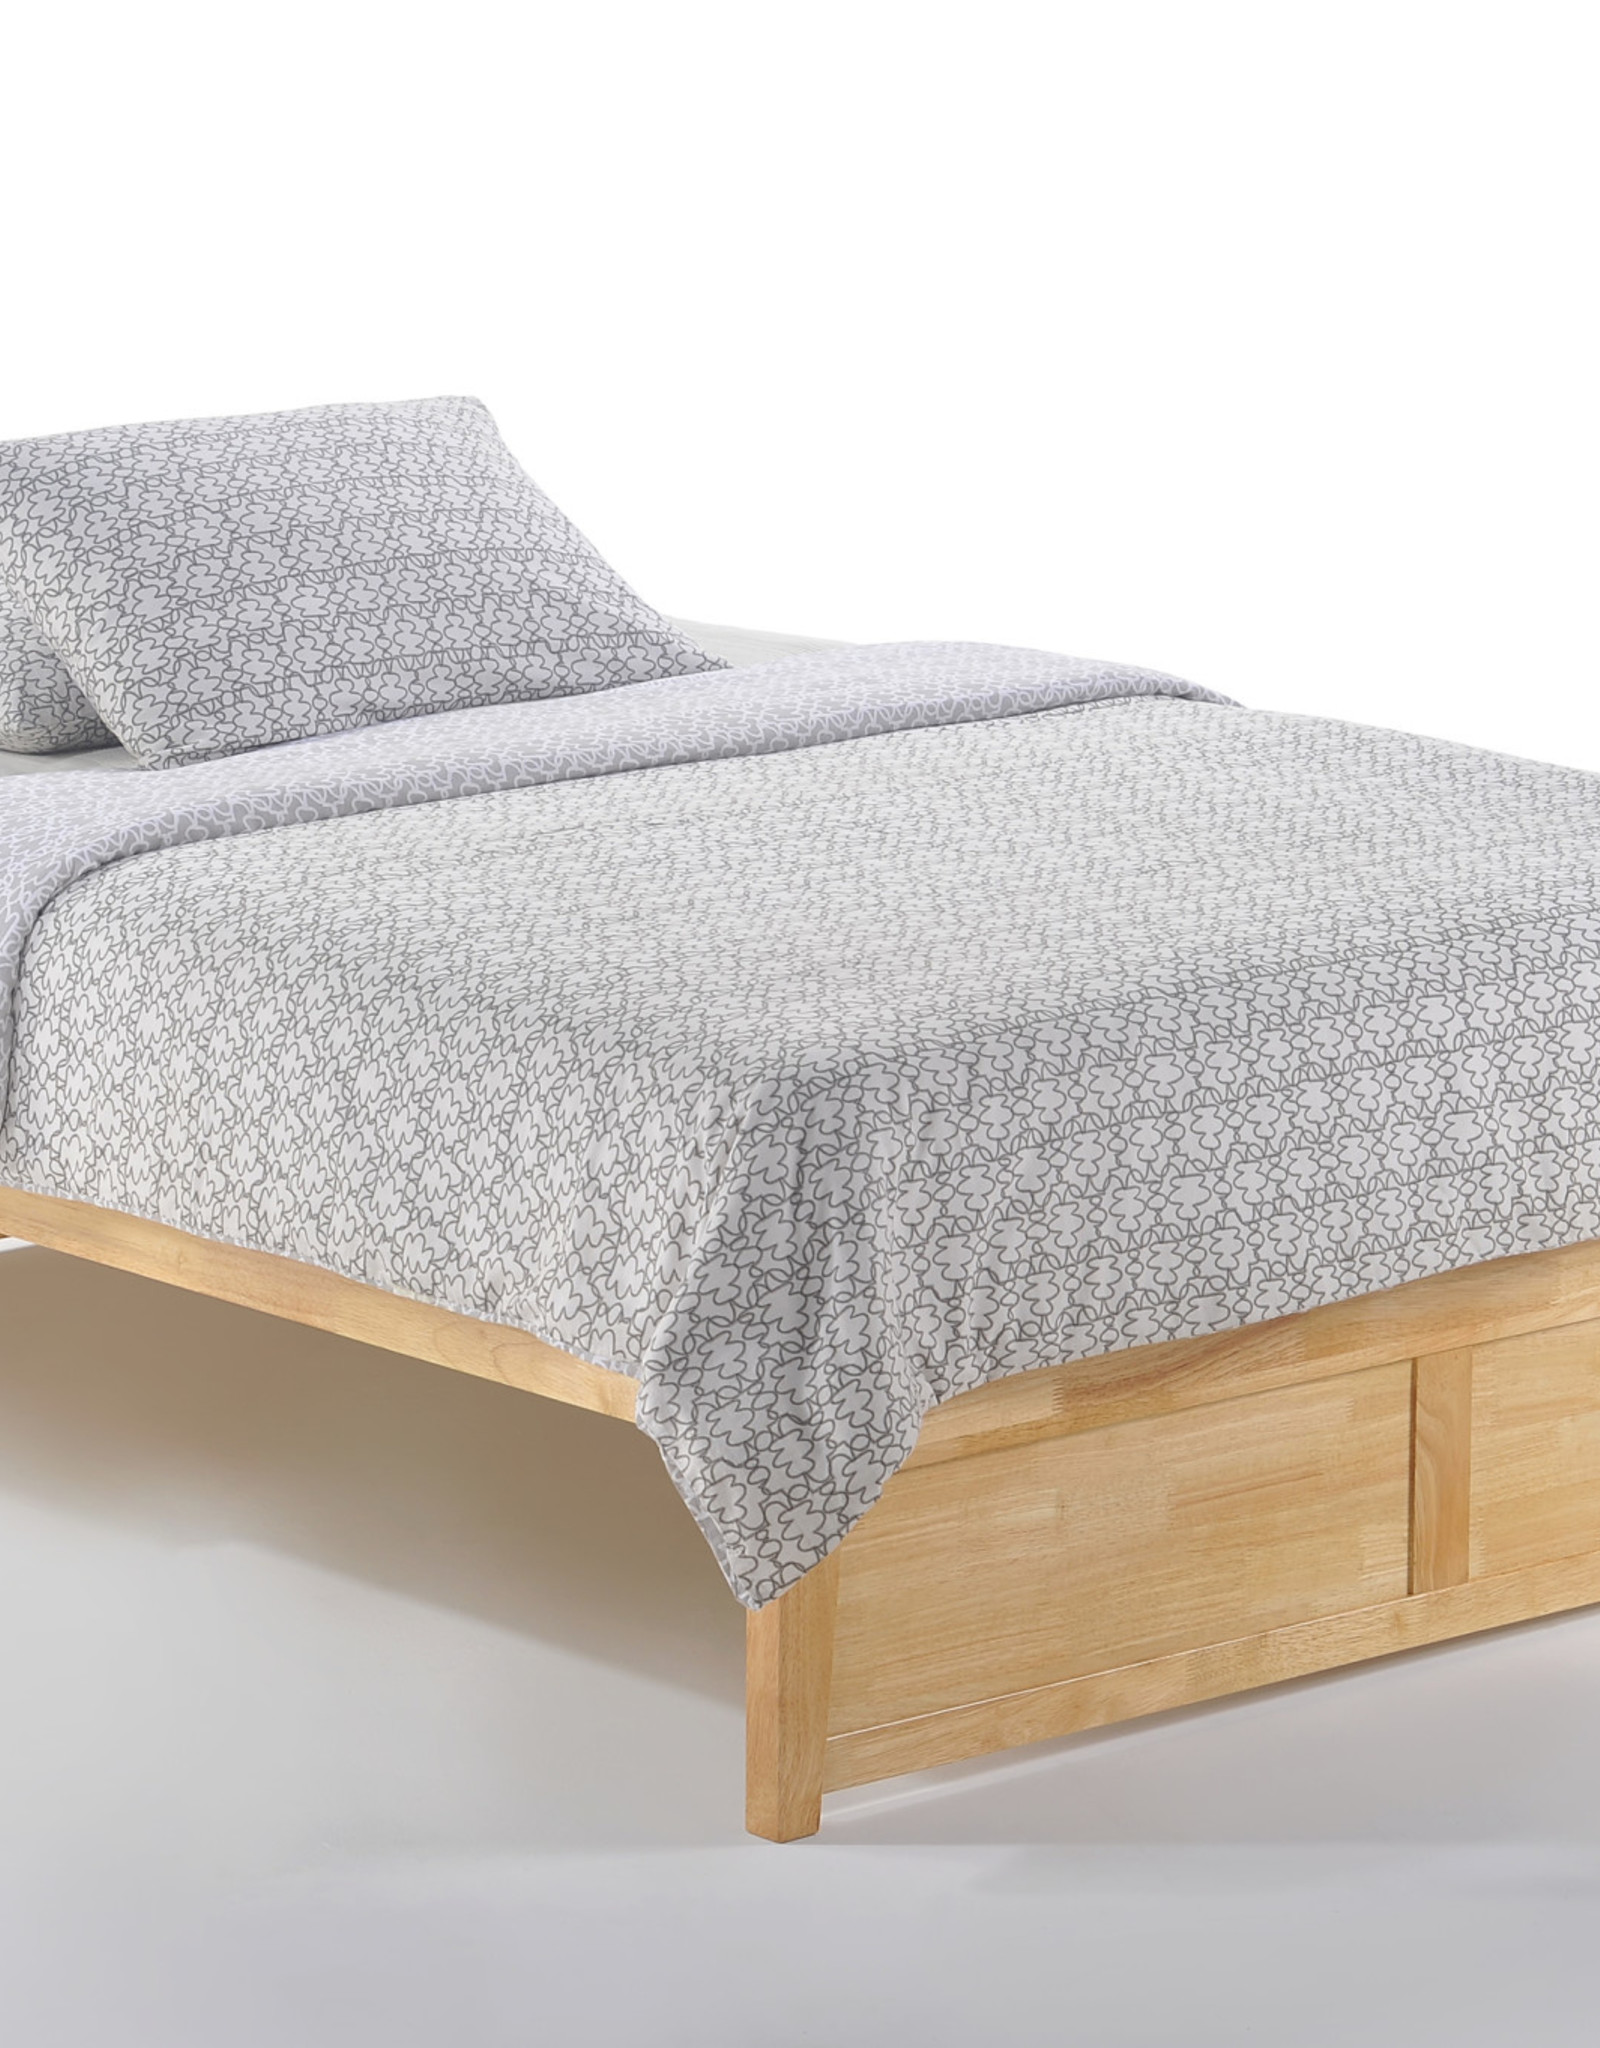 Tall Basic Platform Bed - Comes in Four Colors